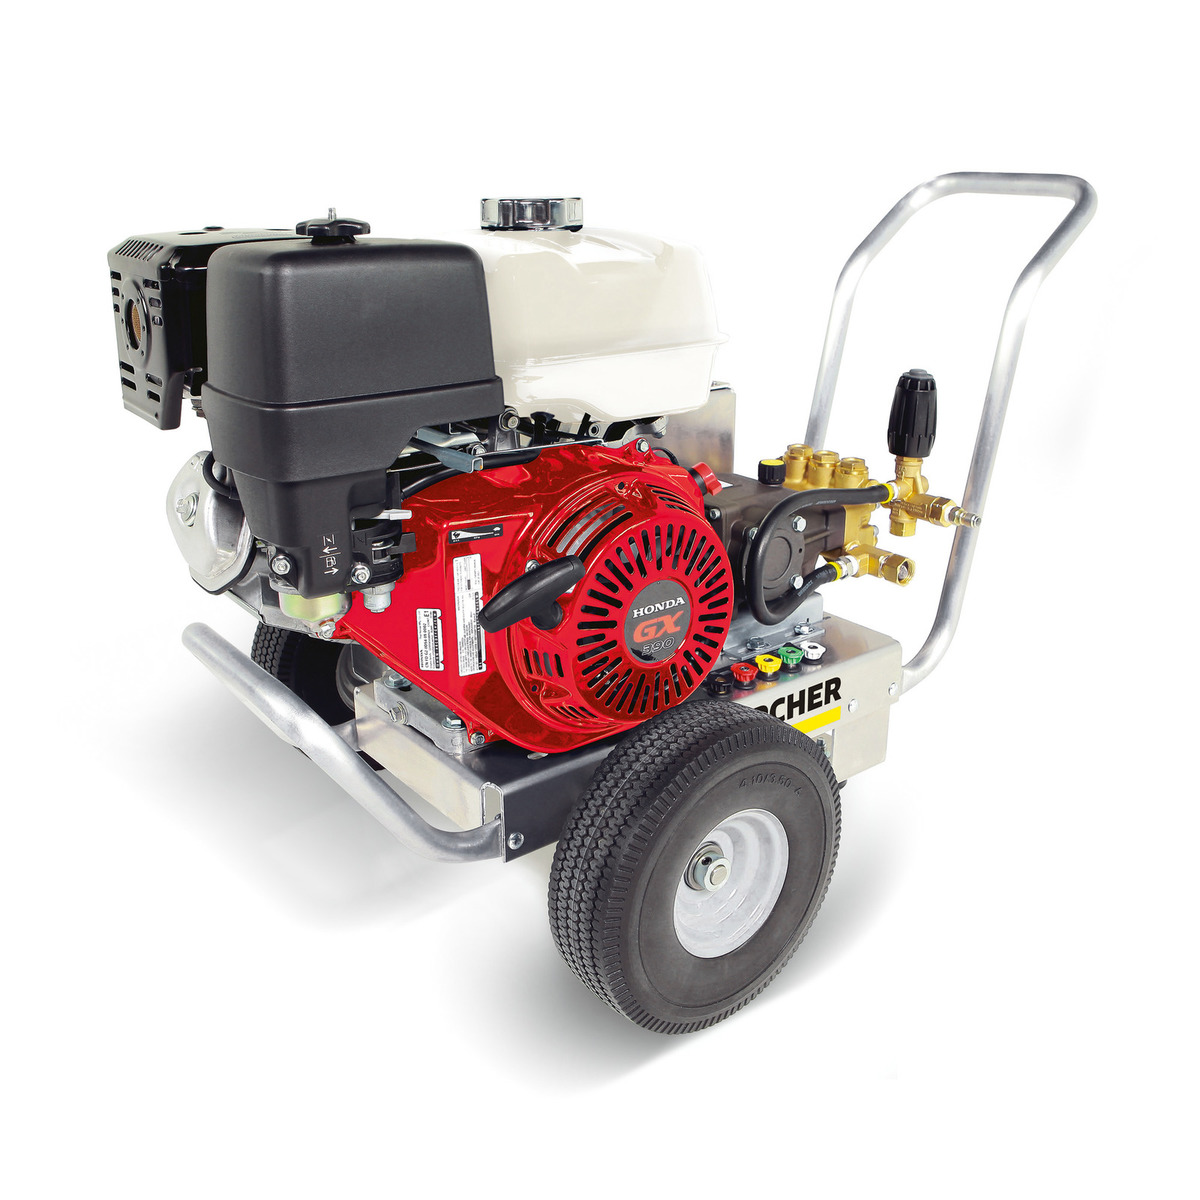 Heavy Duty 4000psi Gas Powered Cold Water Pressure Washer - Cleaning & Pressure Washers